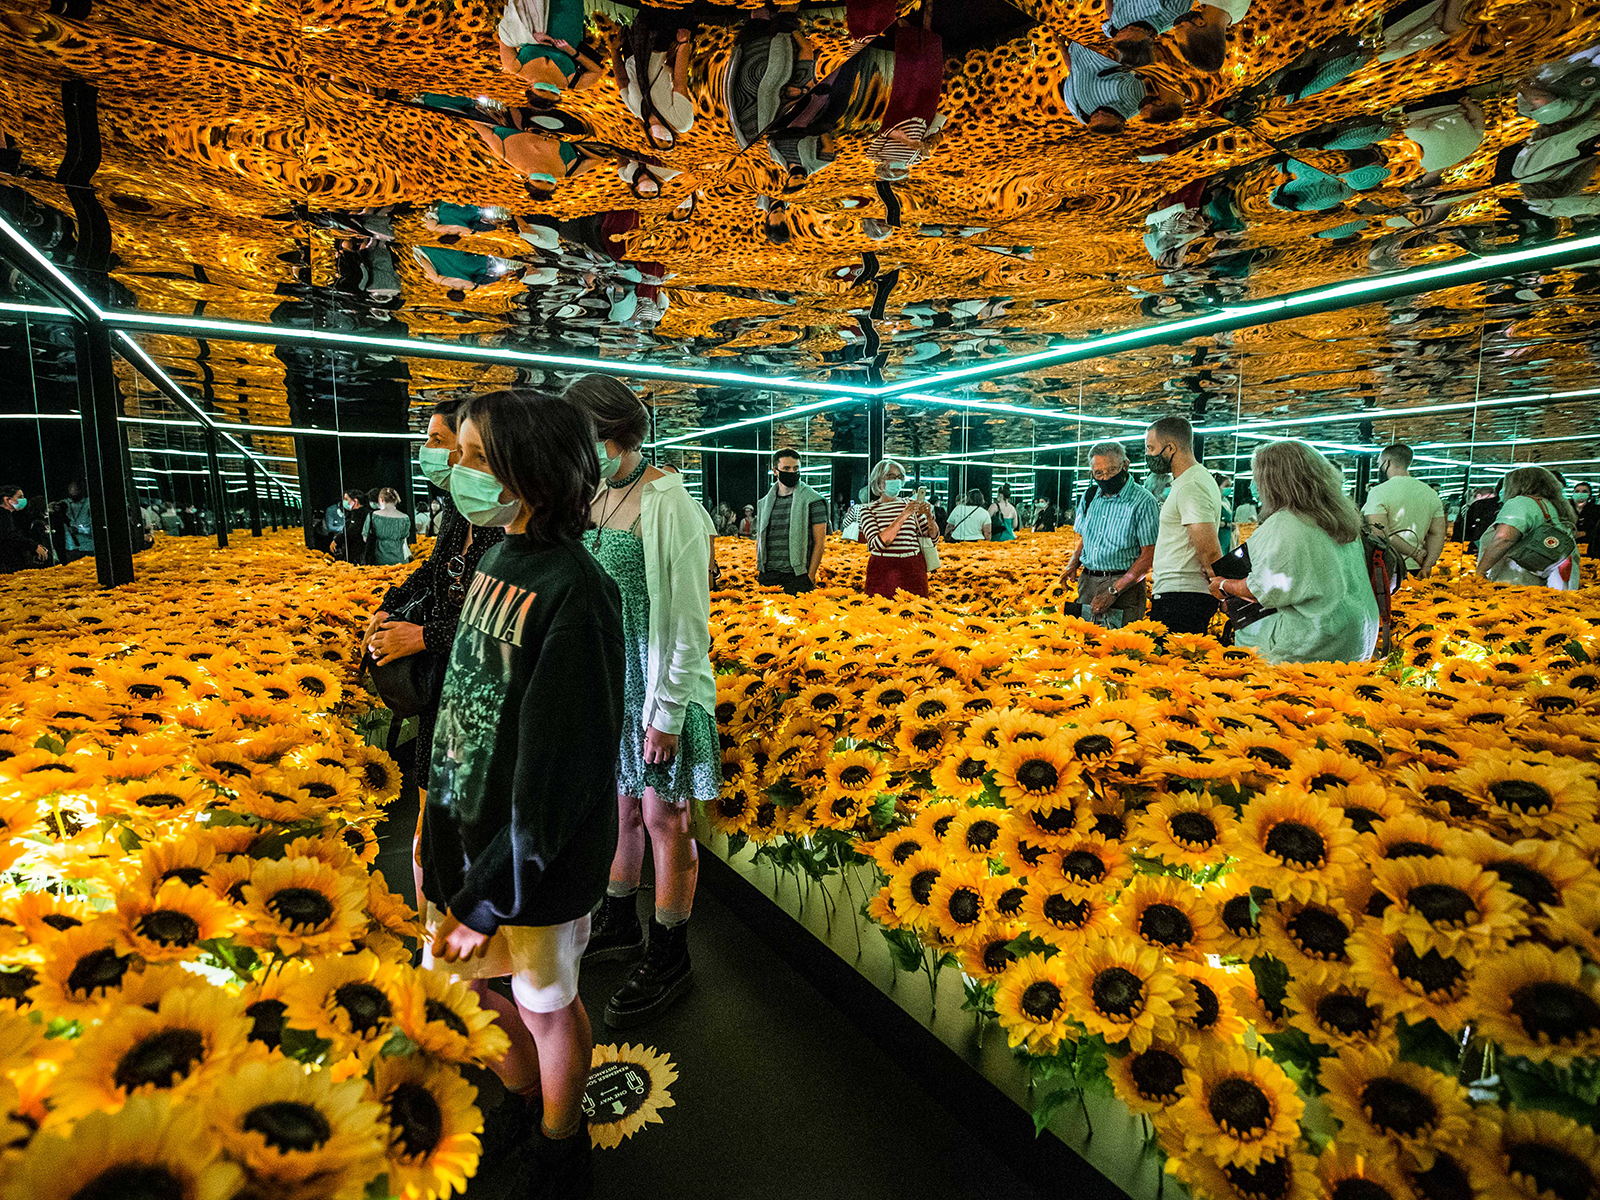 Visitors walk through a mirrored room filled with sunflowers